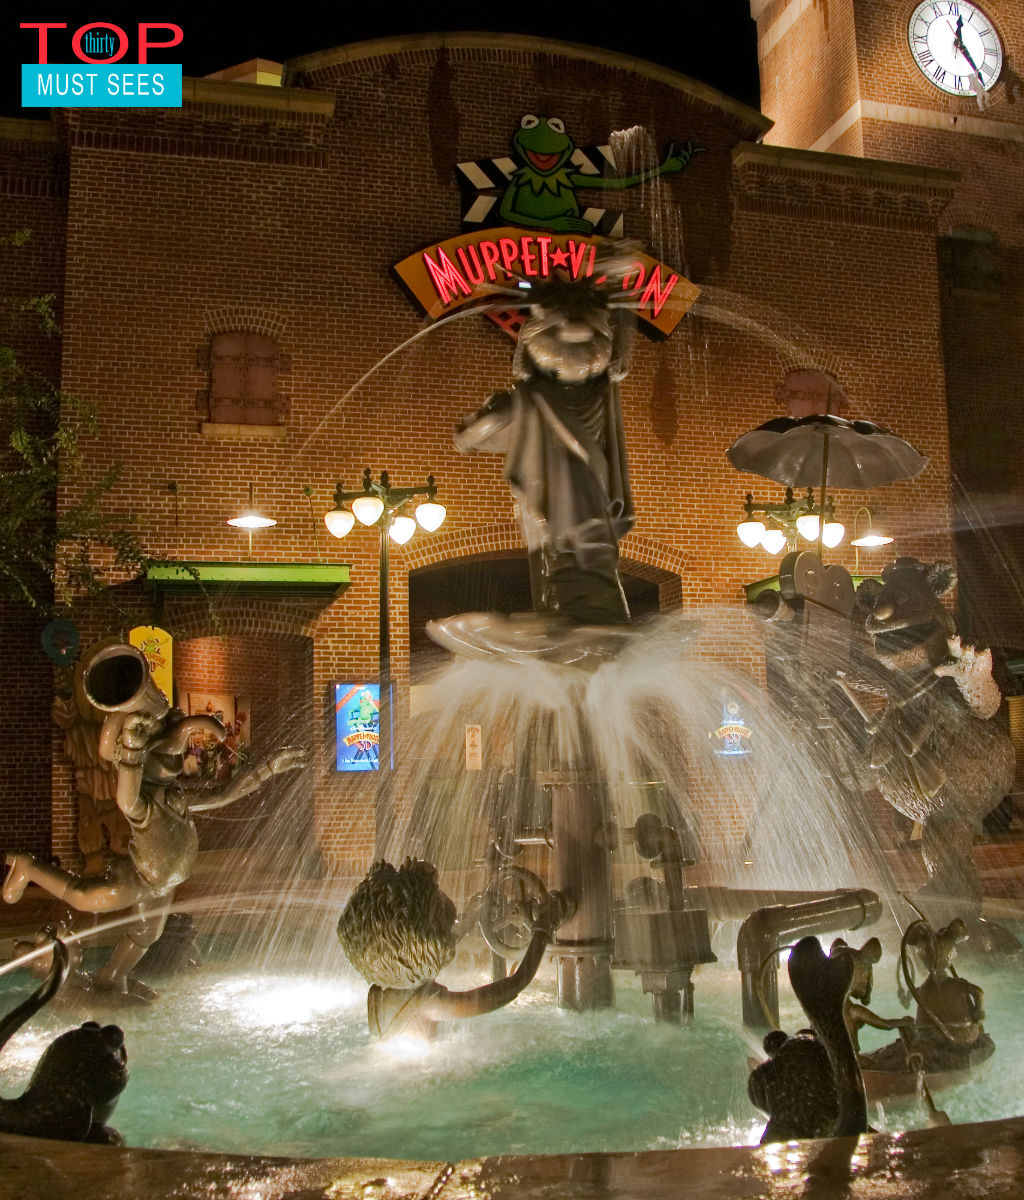 Disney: The Most Underrated Disney World Attractions